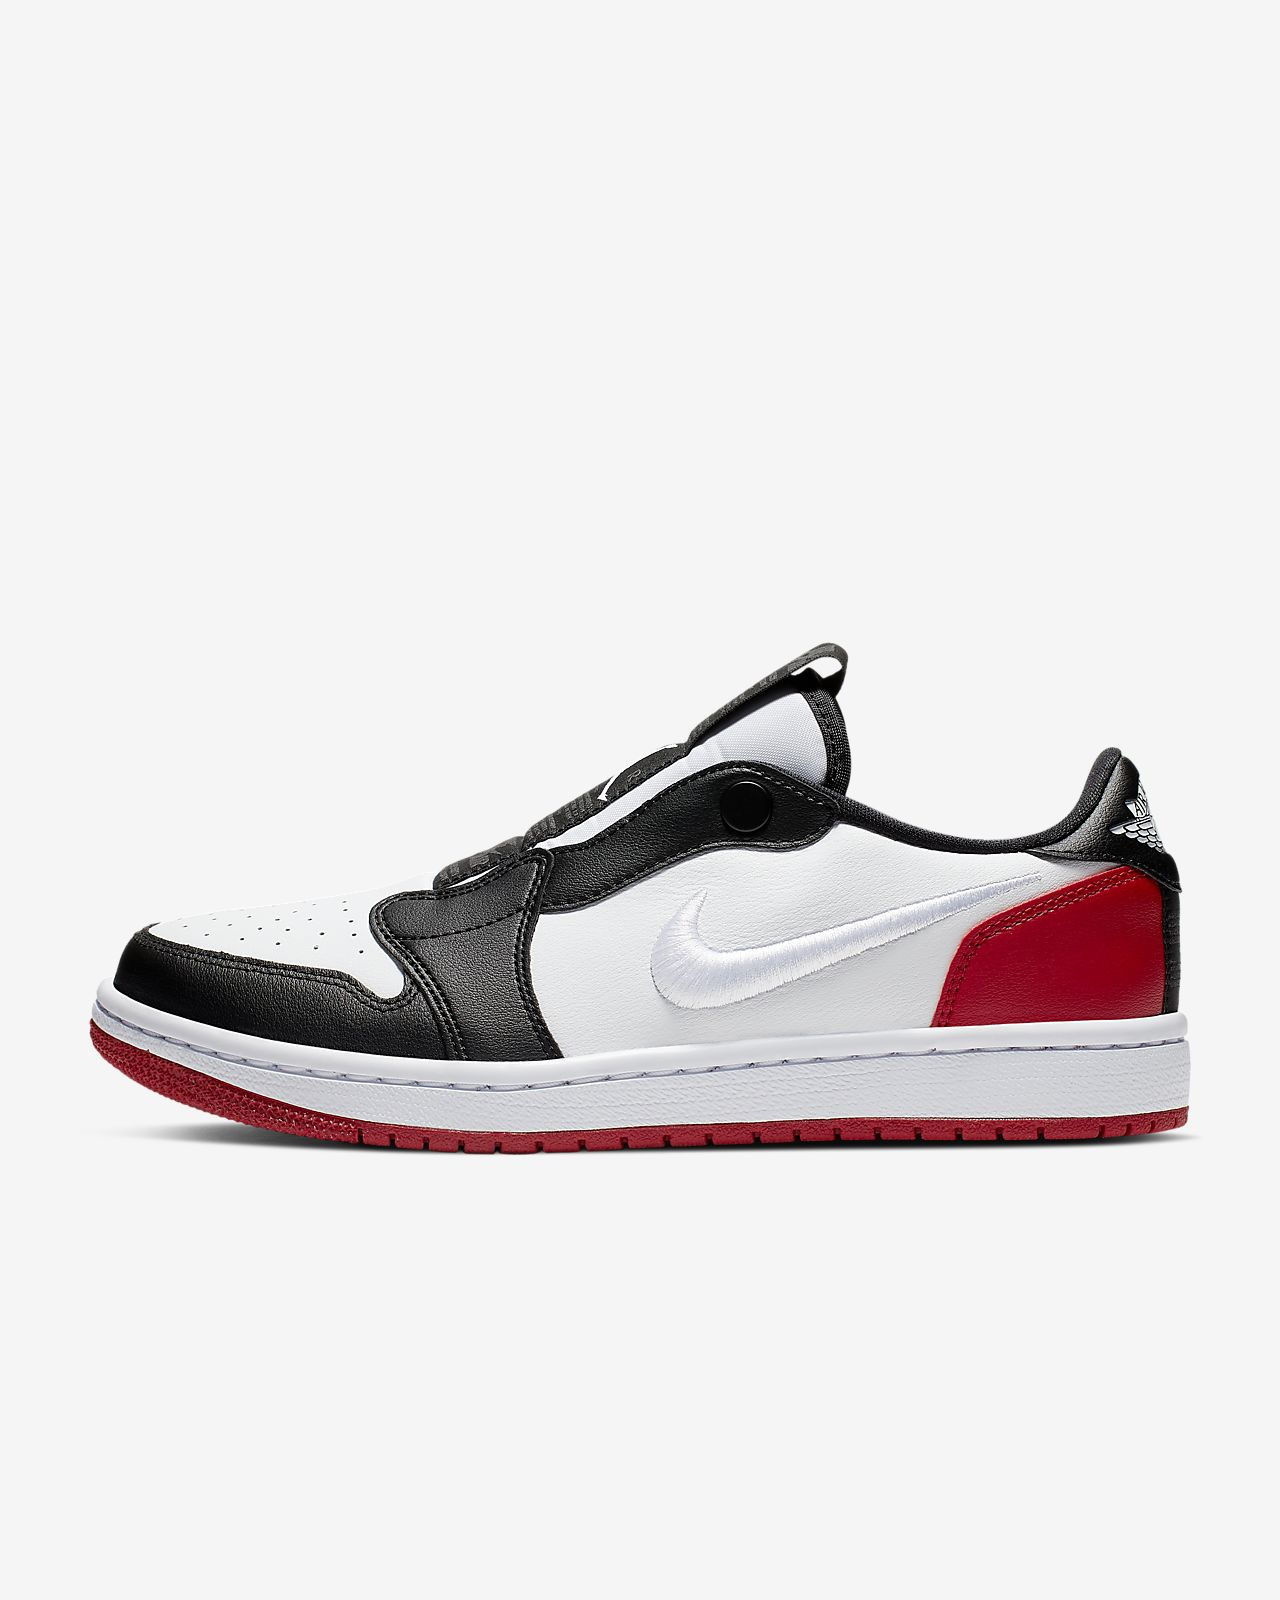 Air Jordan 1 RET Low Slip 女子运动鞋